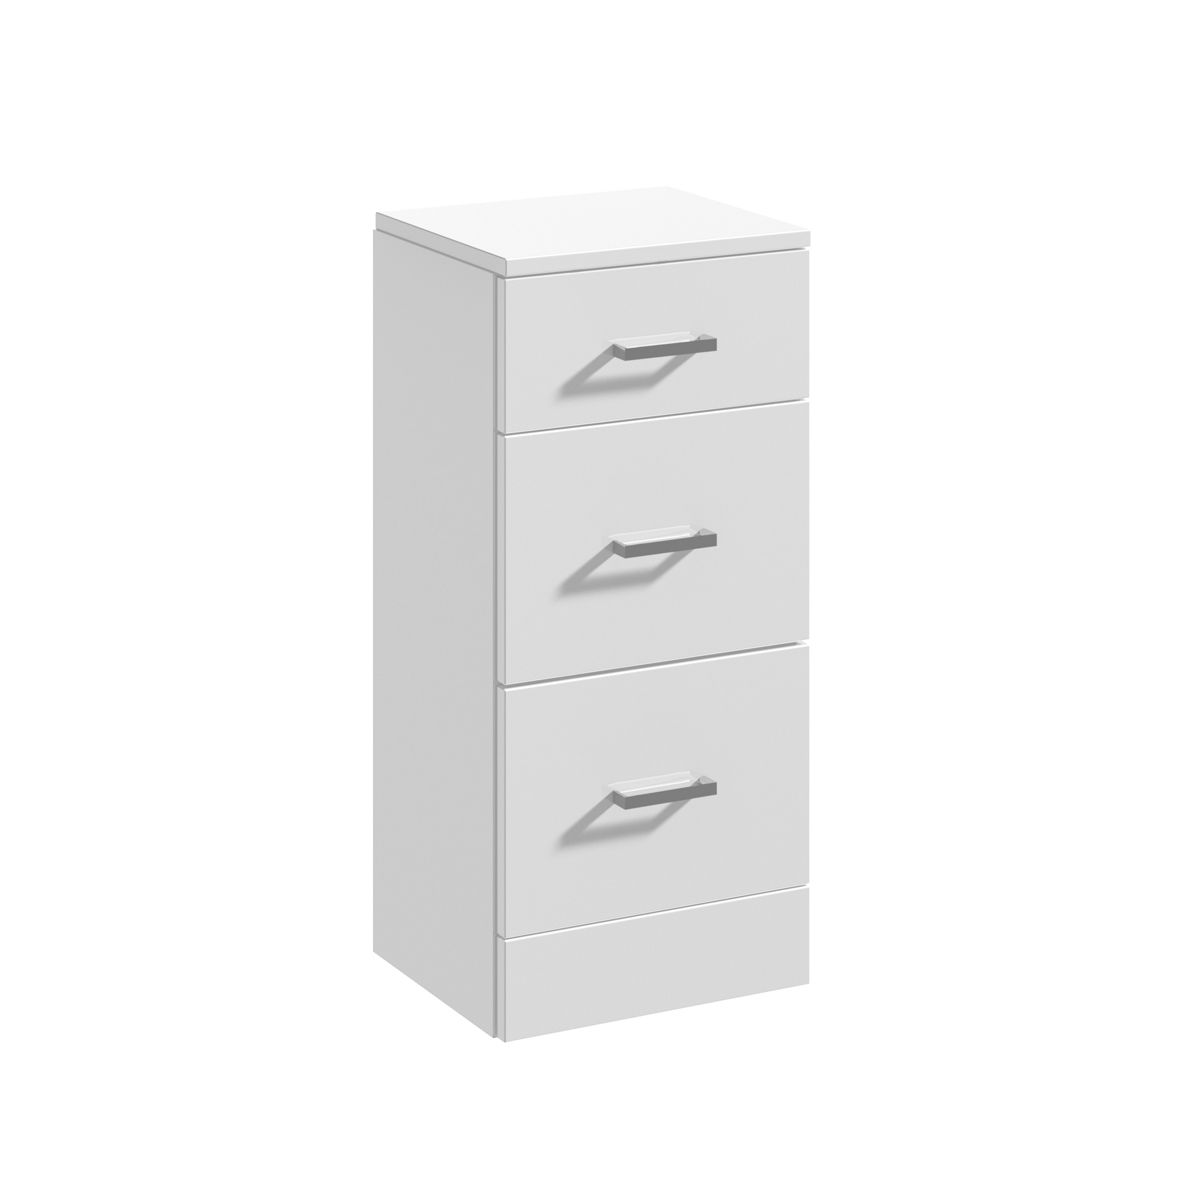 Nuie High Gloss White 3 Drawer Unit 350 x 300mm